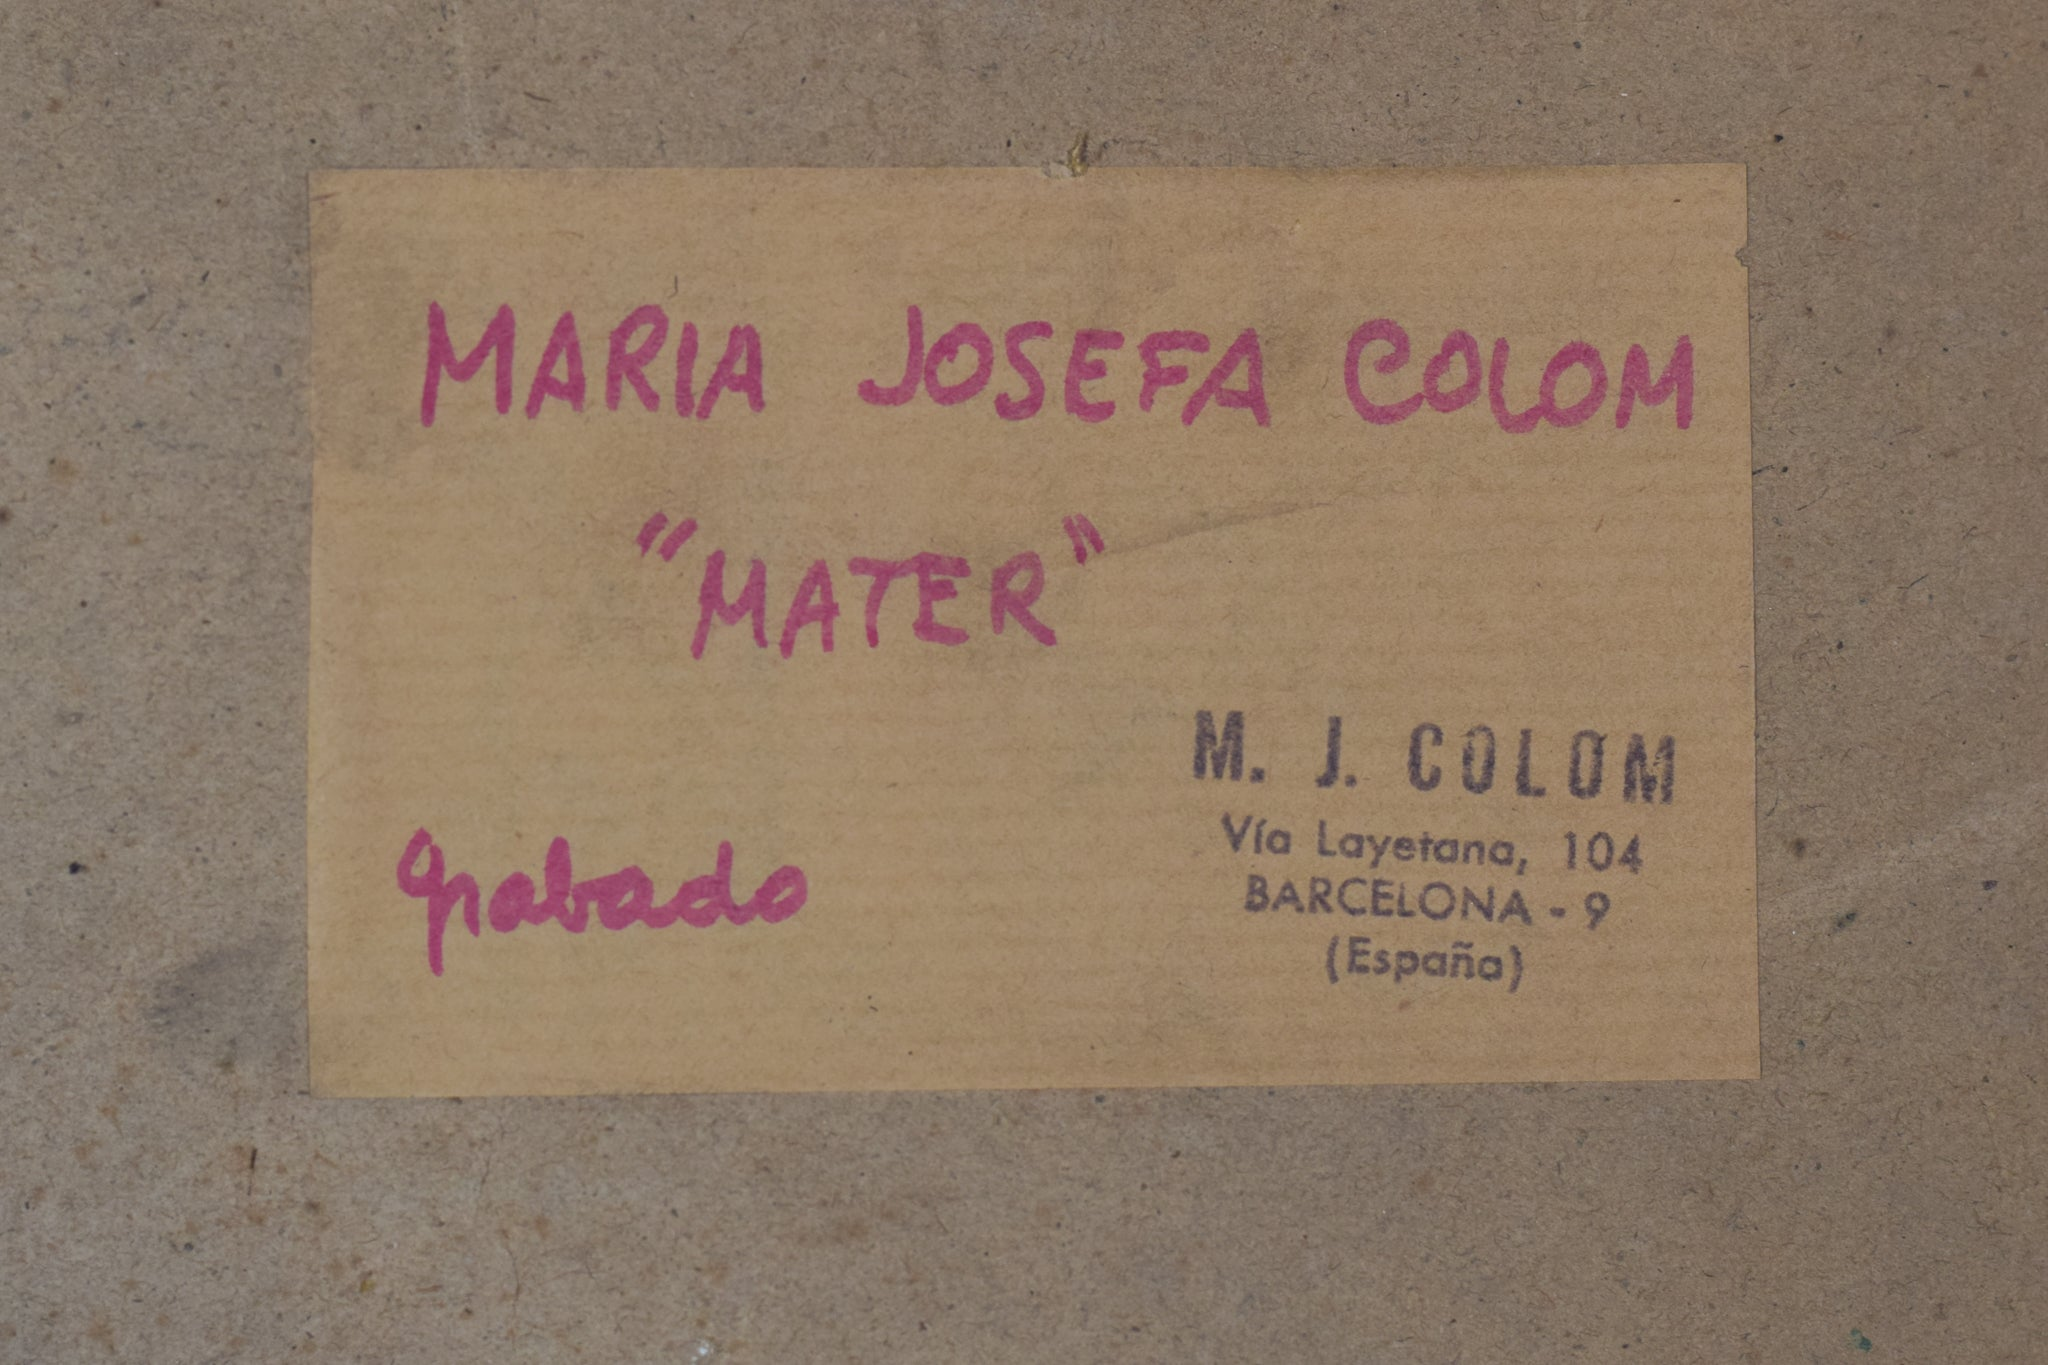 3 Lithographs with images of a Woman by Maria Josefa Colom